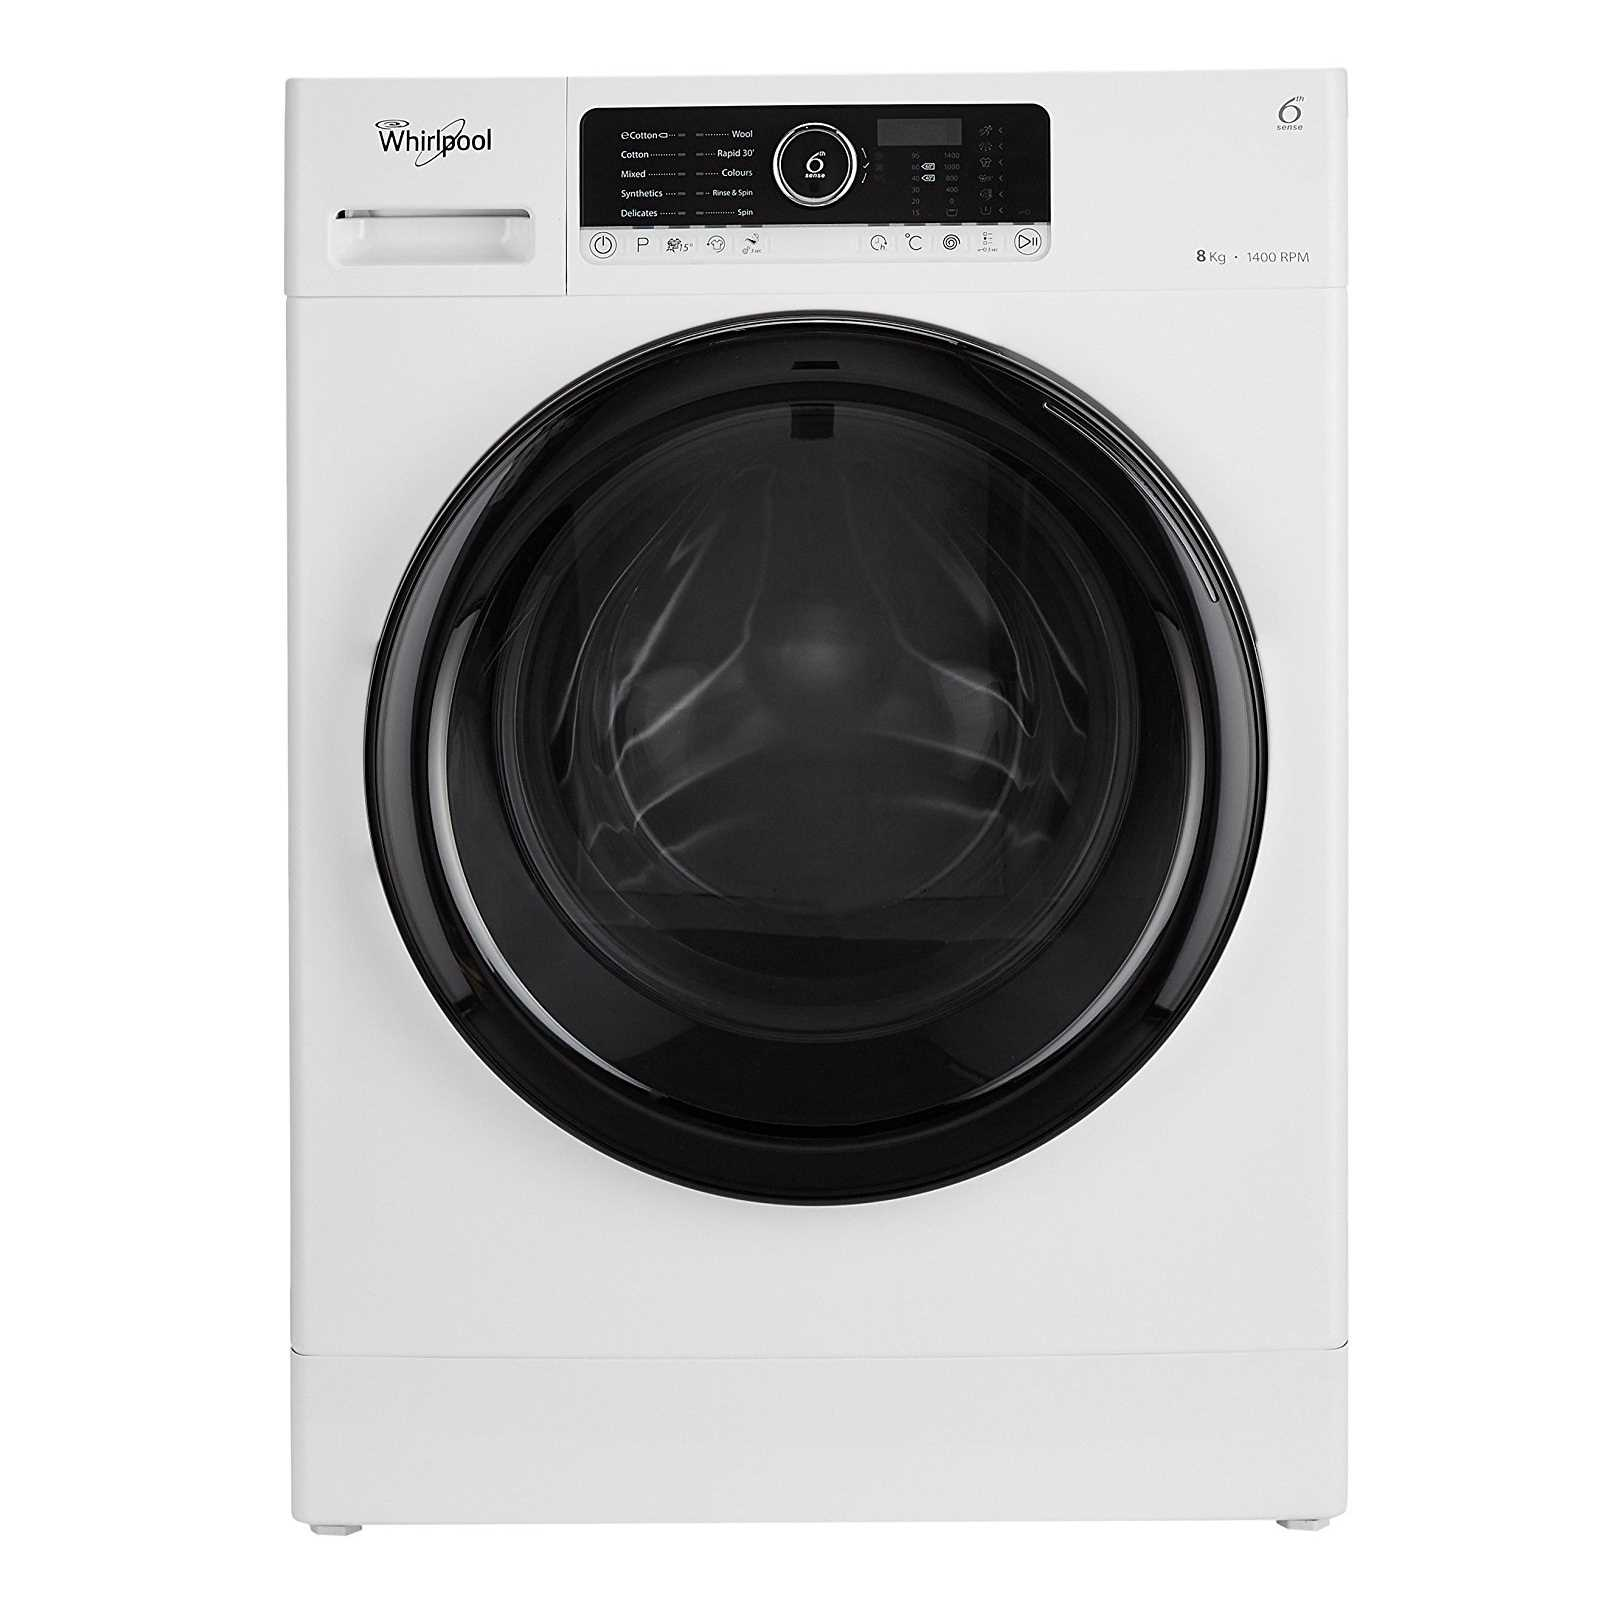 Whirlpool Supreme Care 8 Kg Fully Automatic Front Loading Washing Machine